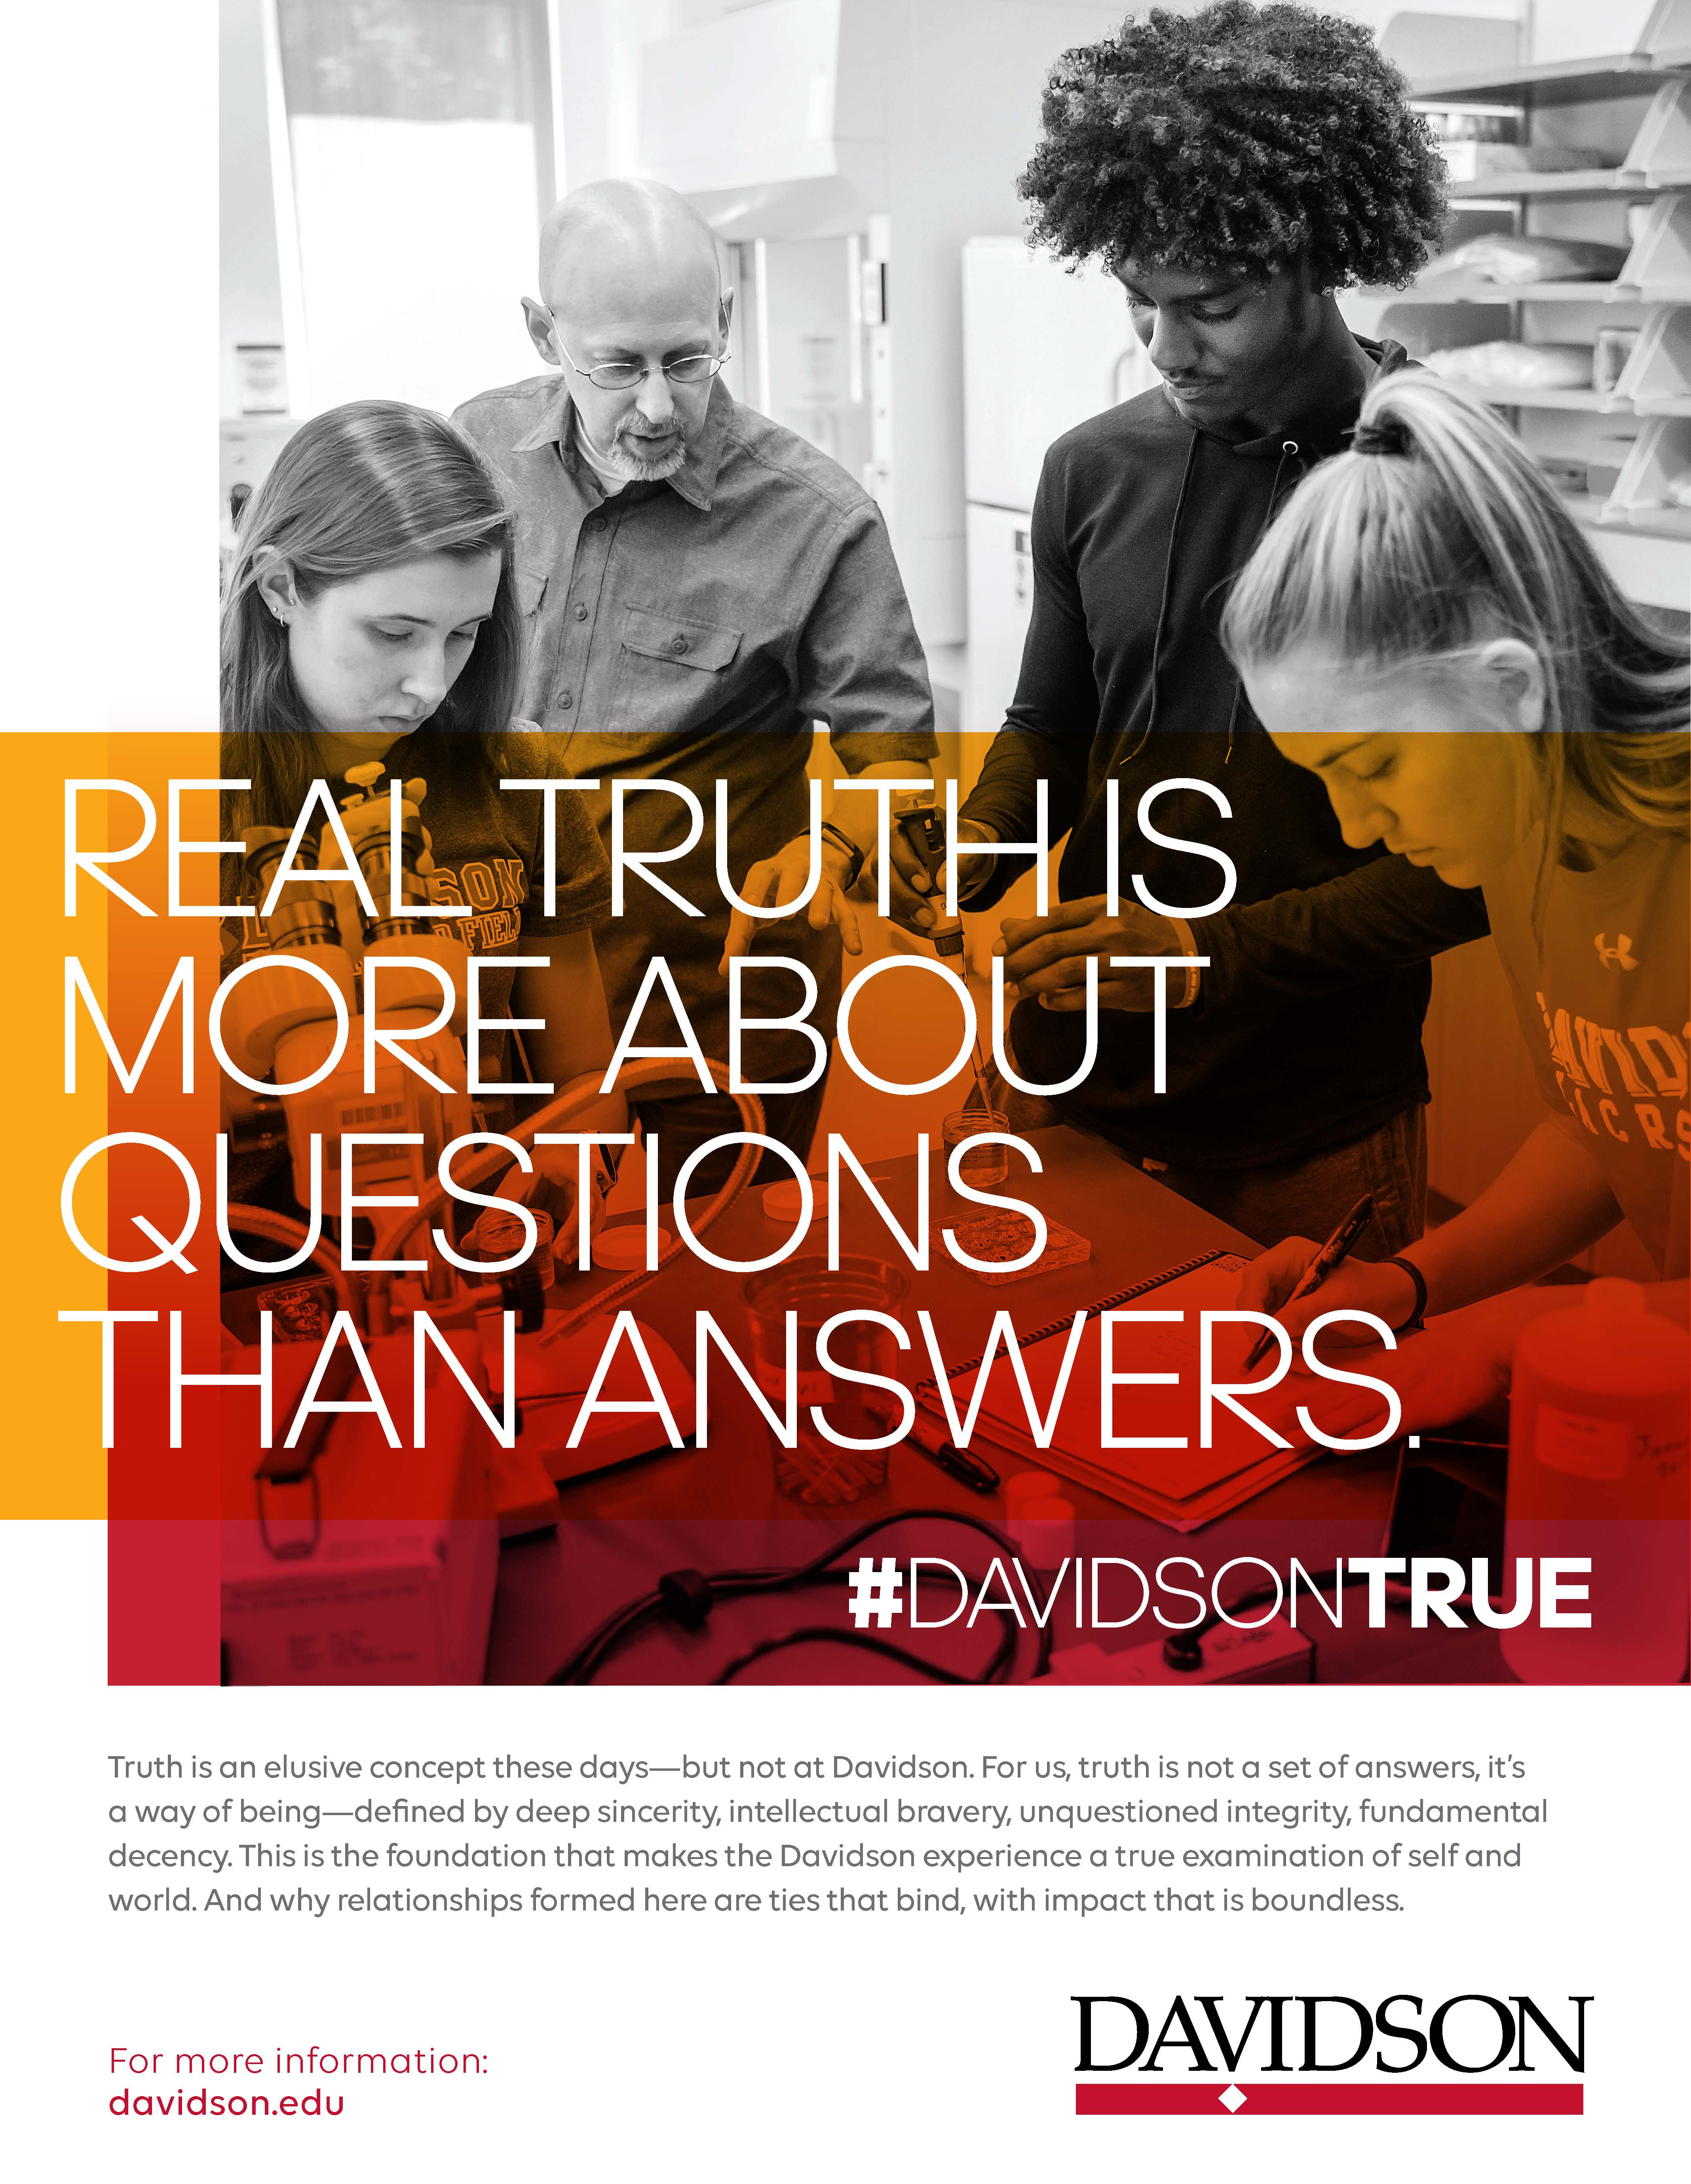 """Lab experiment with overlaid """"Real truth is more about questions than answers."""""""